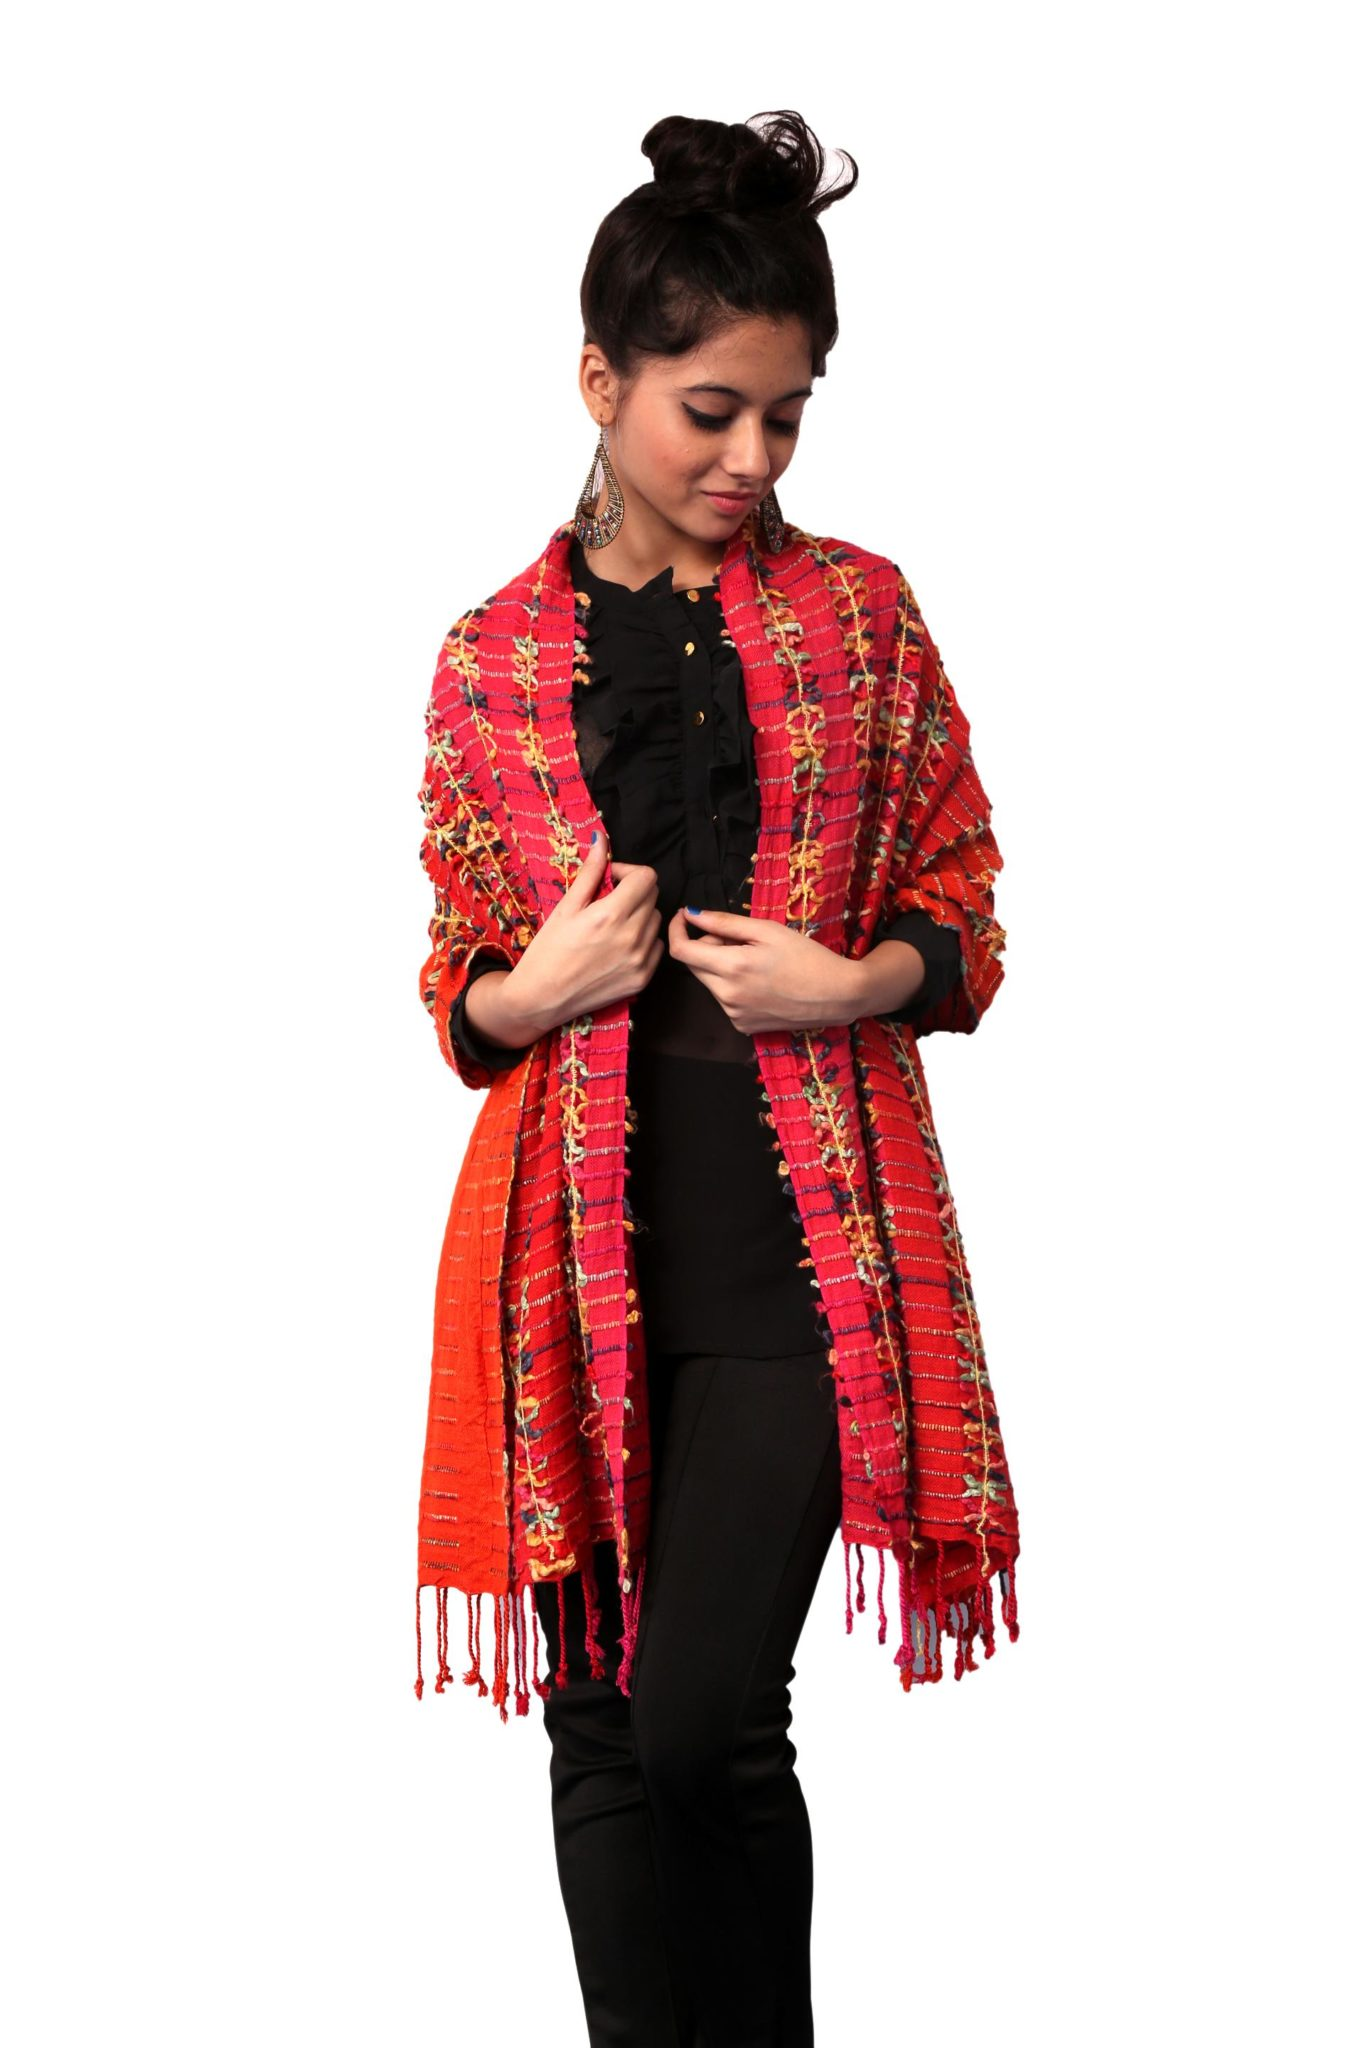 Find a great selection of scarves & wraps at imaginary-7mbh1j.cf Browse all scarves, wraps & shawls in the latest collection. Free shipping & returns.